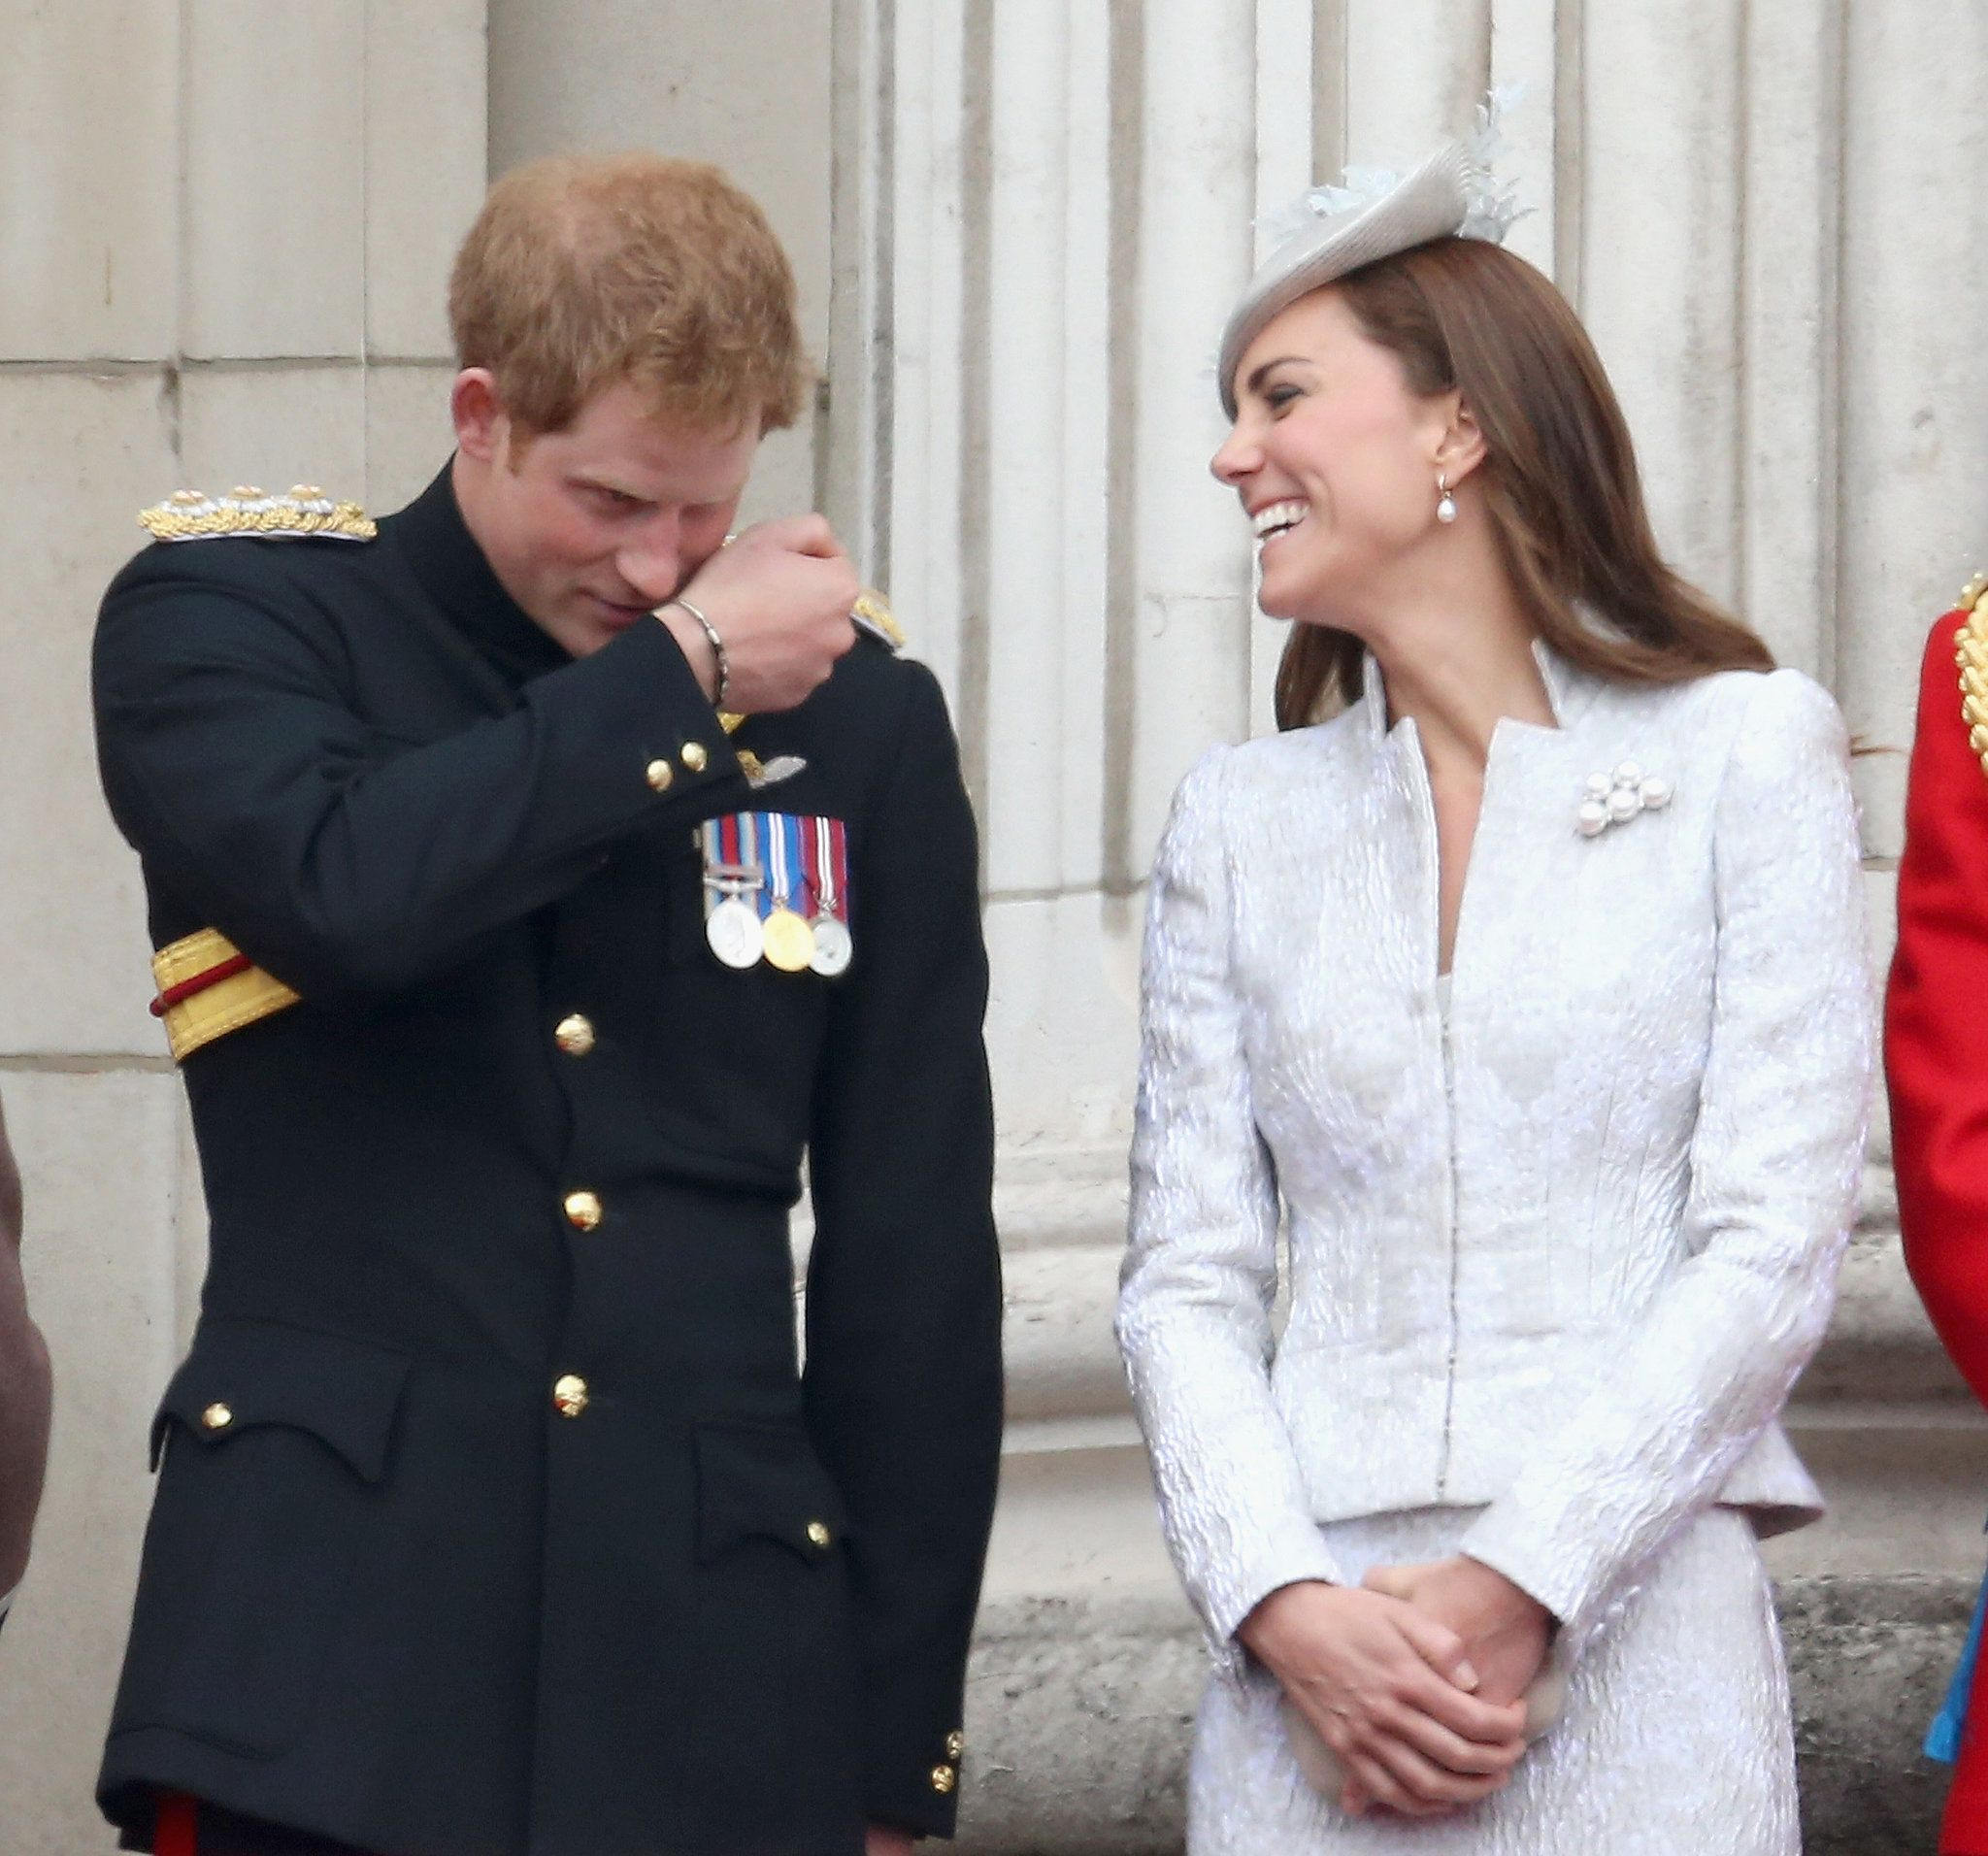 He had his sister-in-law grinning ear-to-ear when he joked around during the 2014 Trooping the Colour festivities.